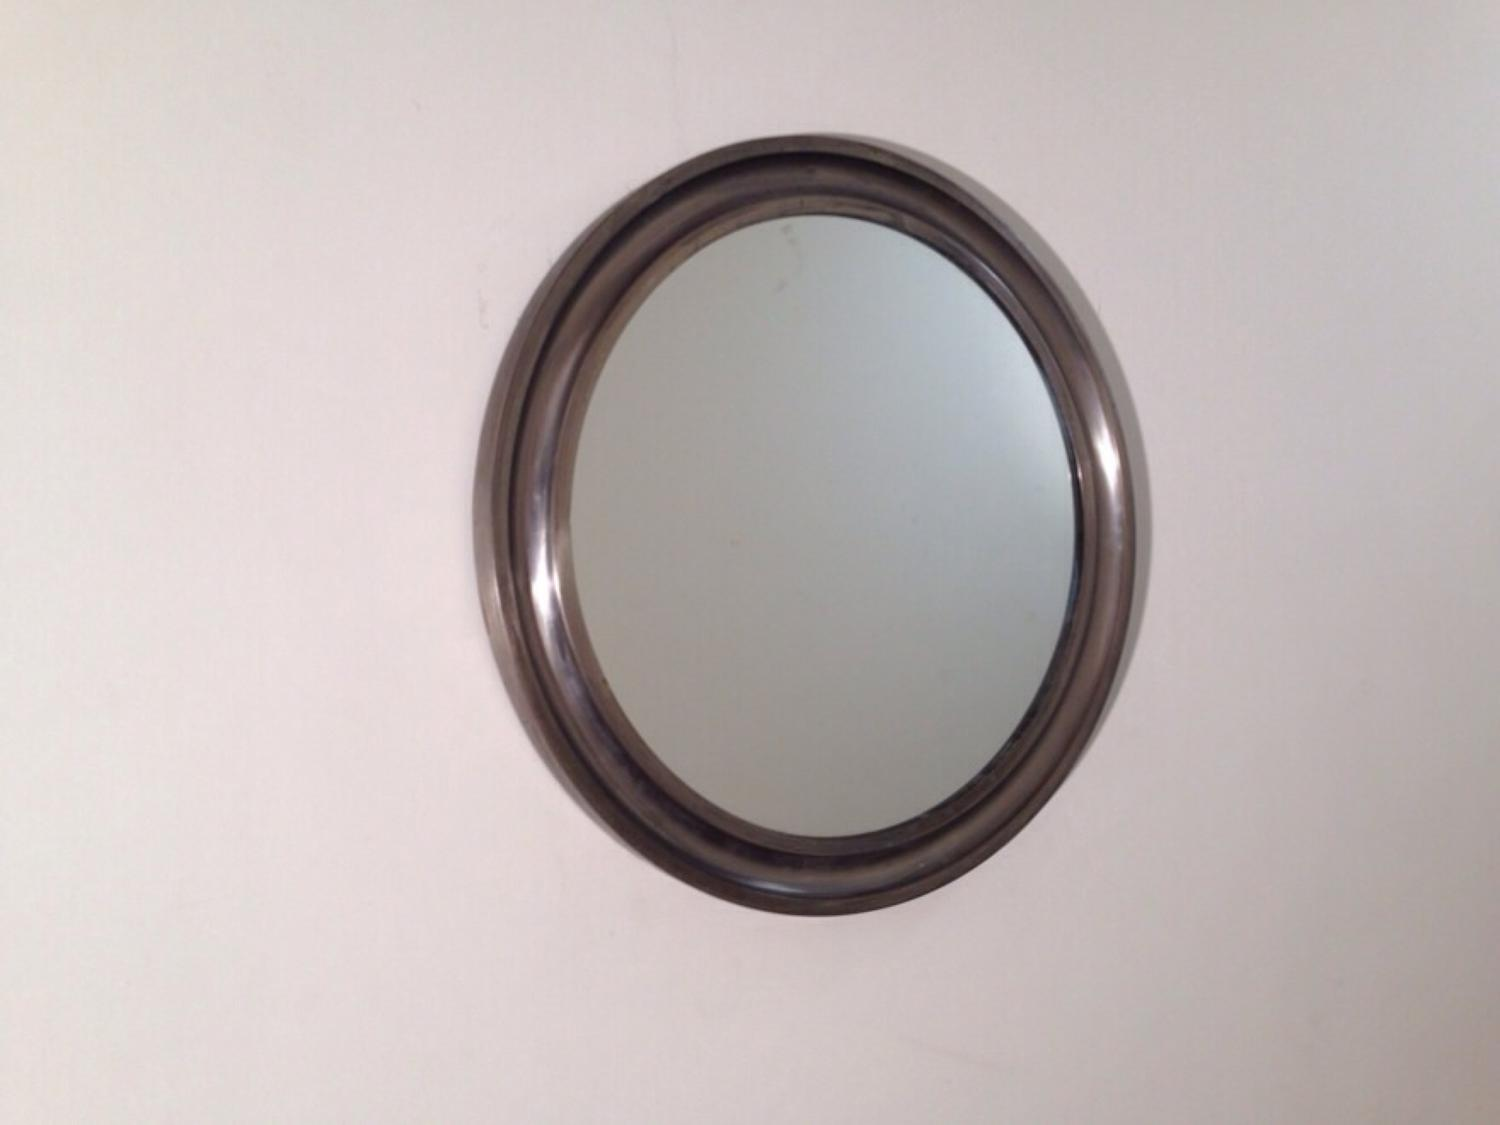 Round metal framed mirror